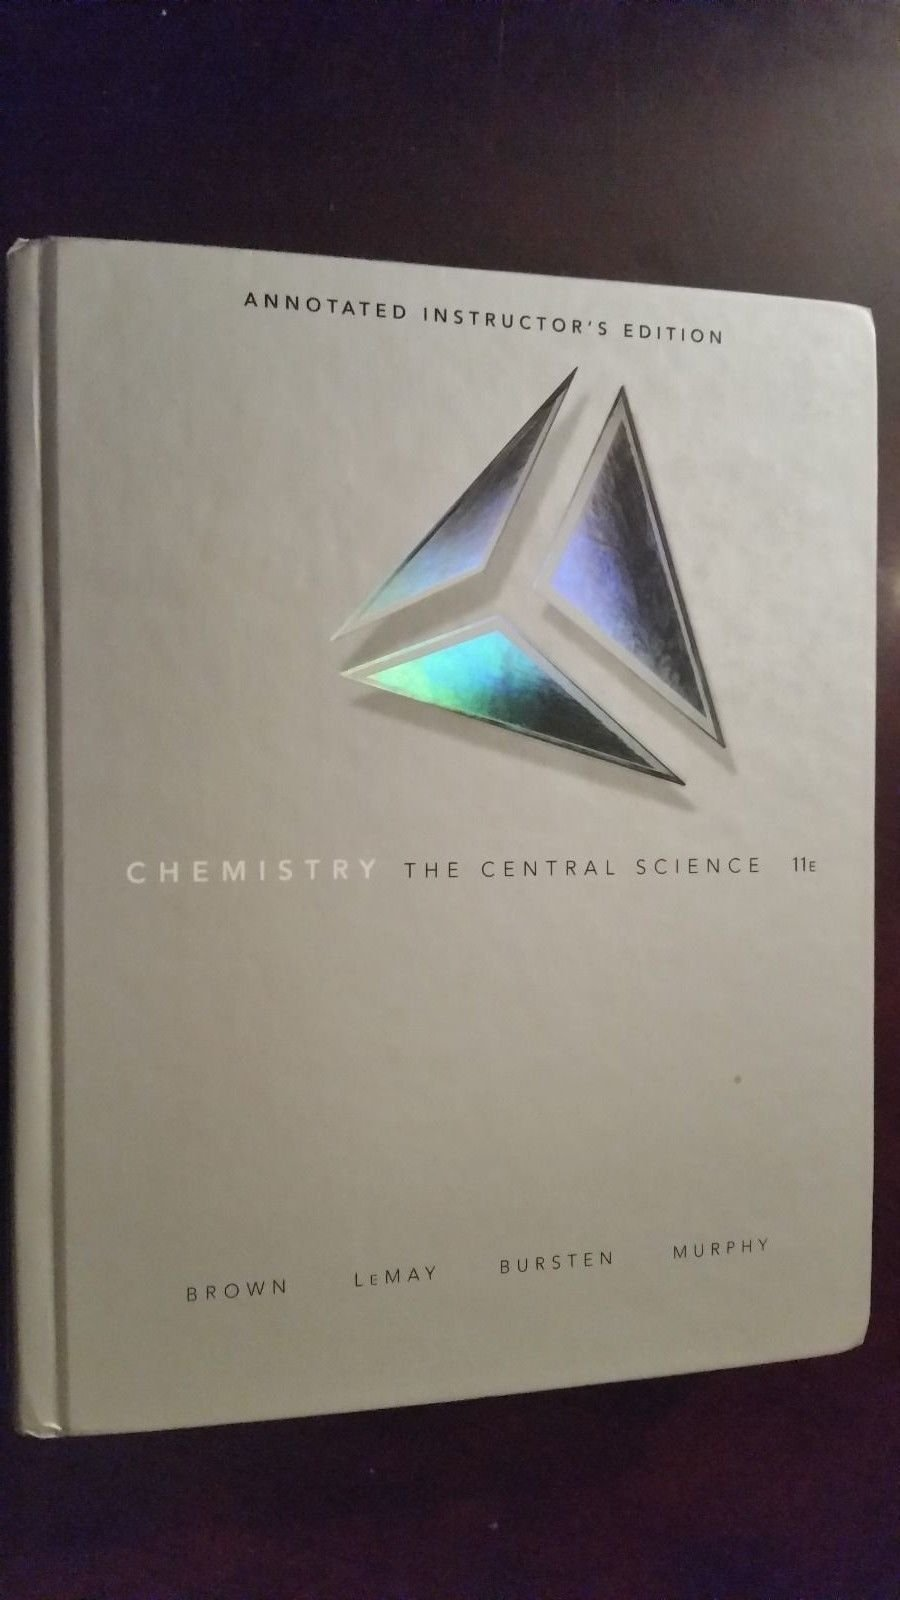 Chemistry The Central Science, 11th Edition, Annotated Instructor's Edition:  Bursten, Murphy Brown LeMay: 9780136012504: Amazon.com: Books